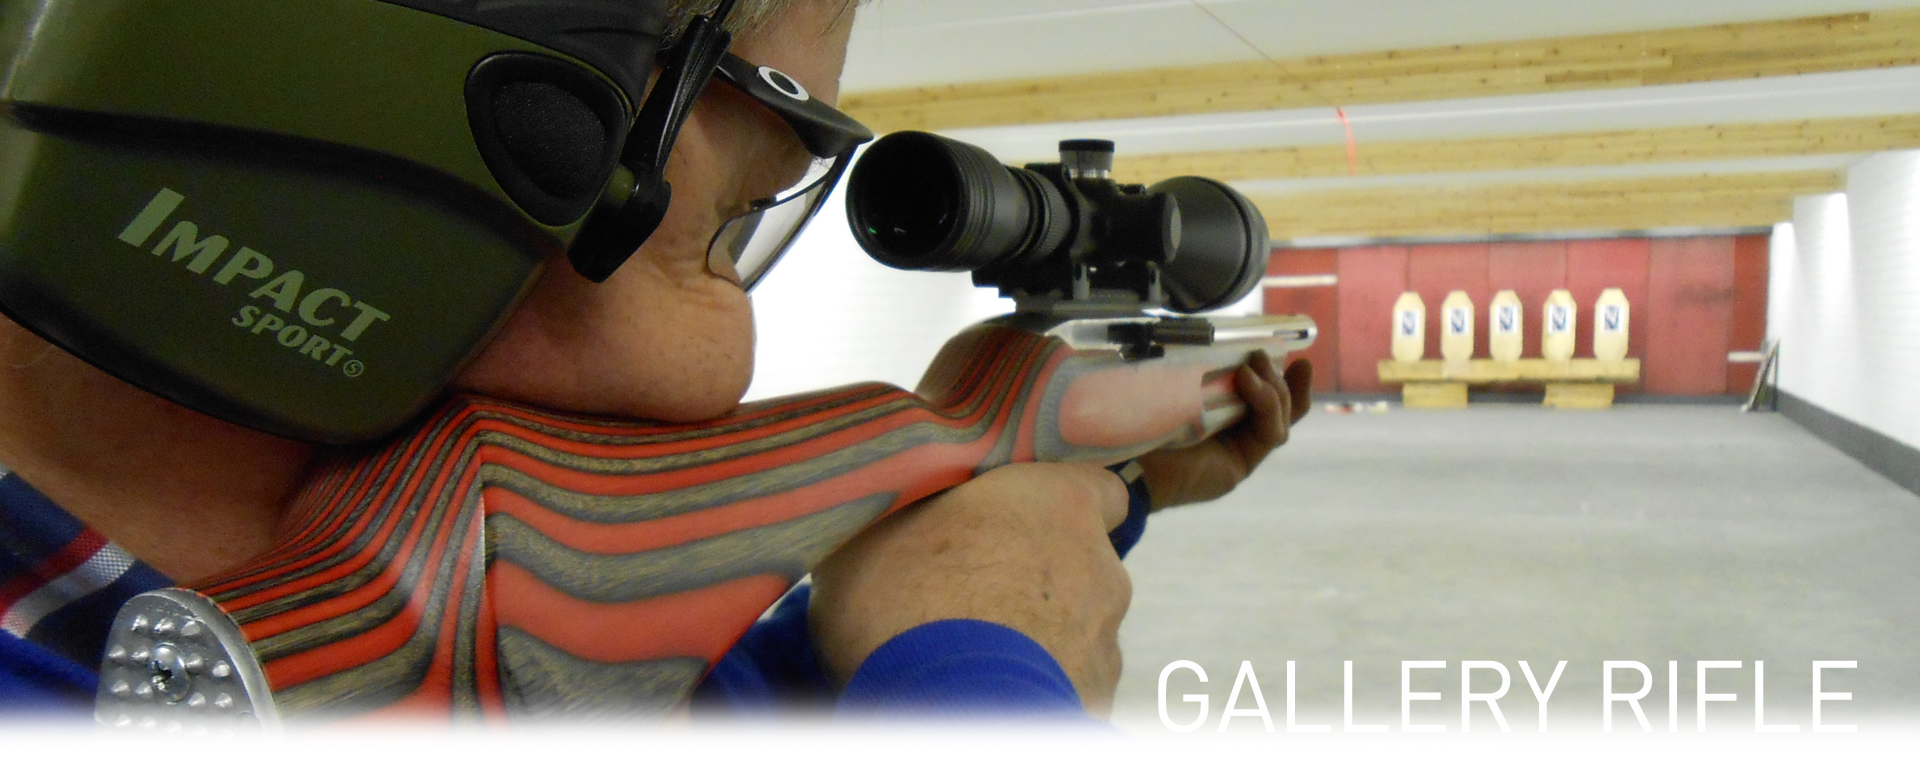 Pistol and Gallery Rifle | Ulster Rifle Association